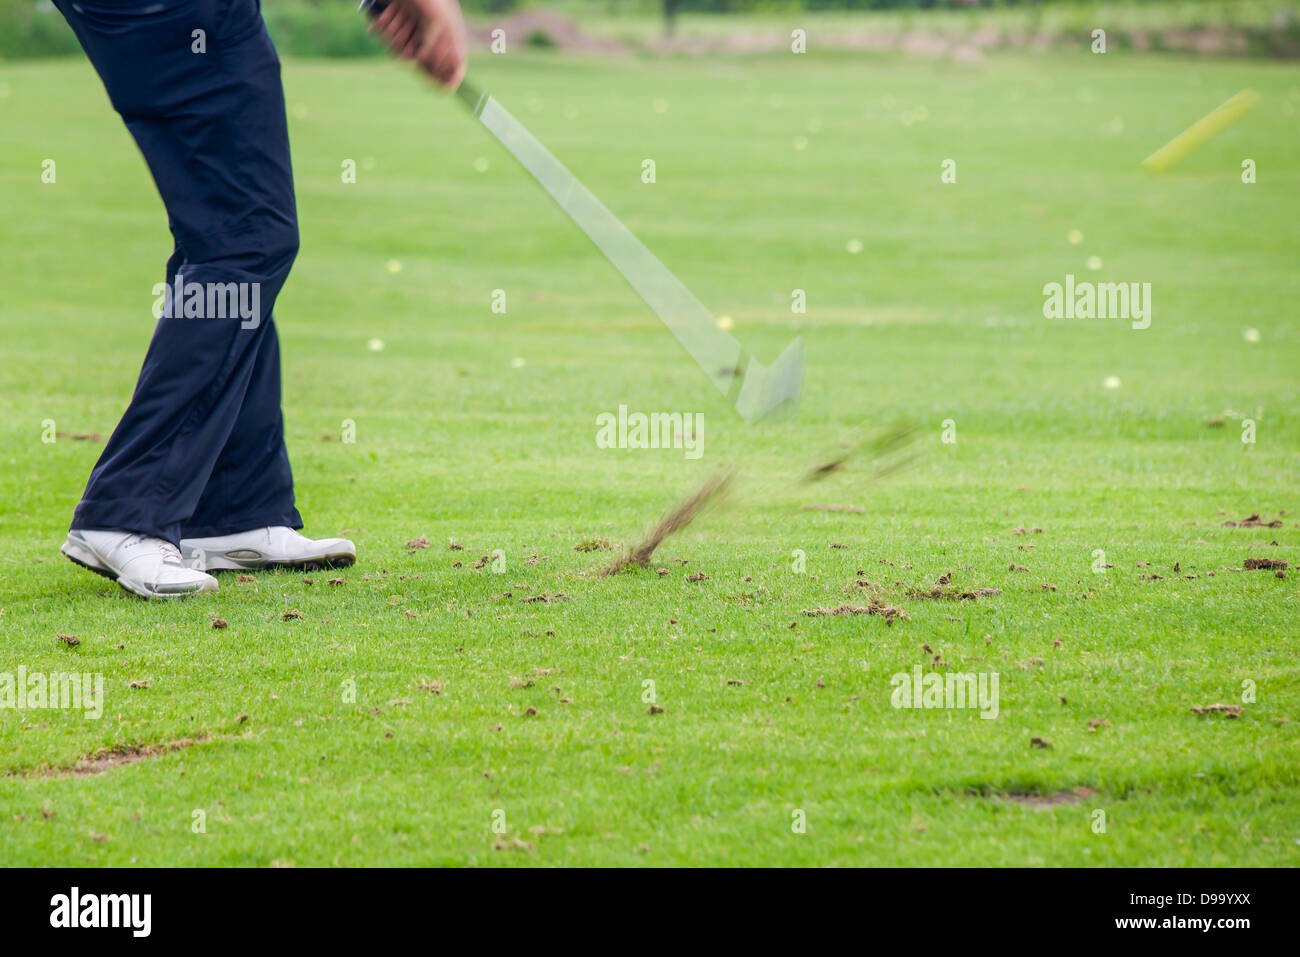 impact of a golf shot - Stock Image